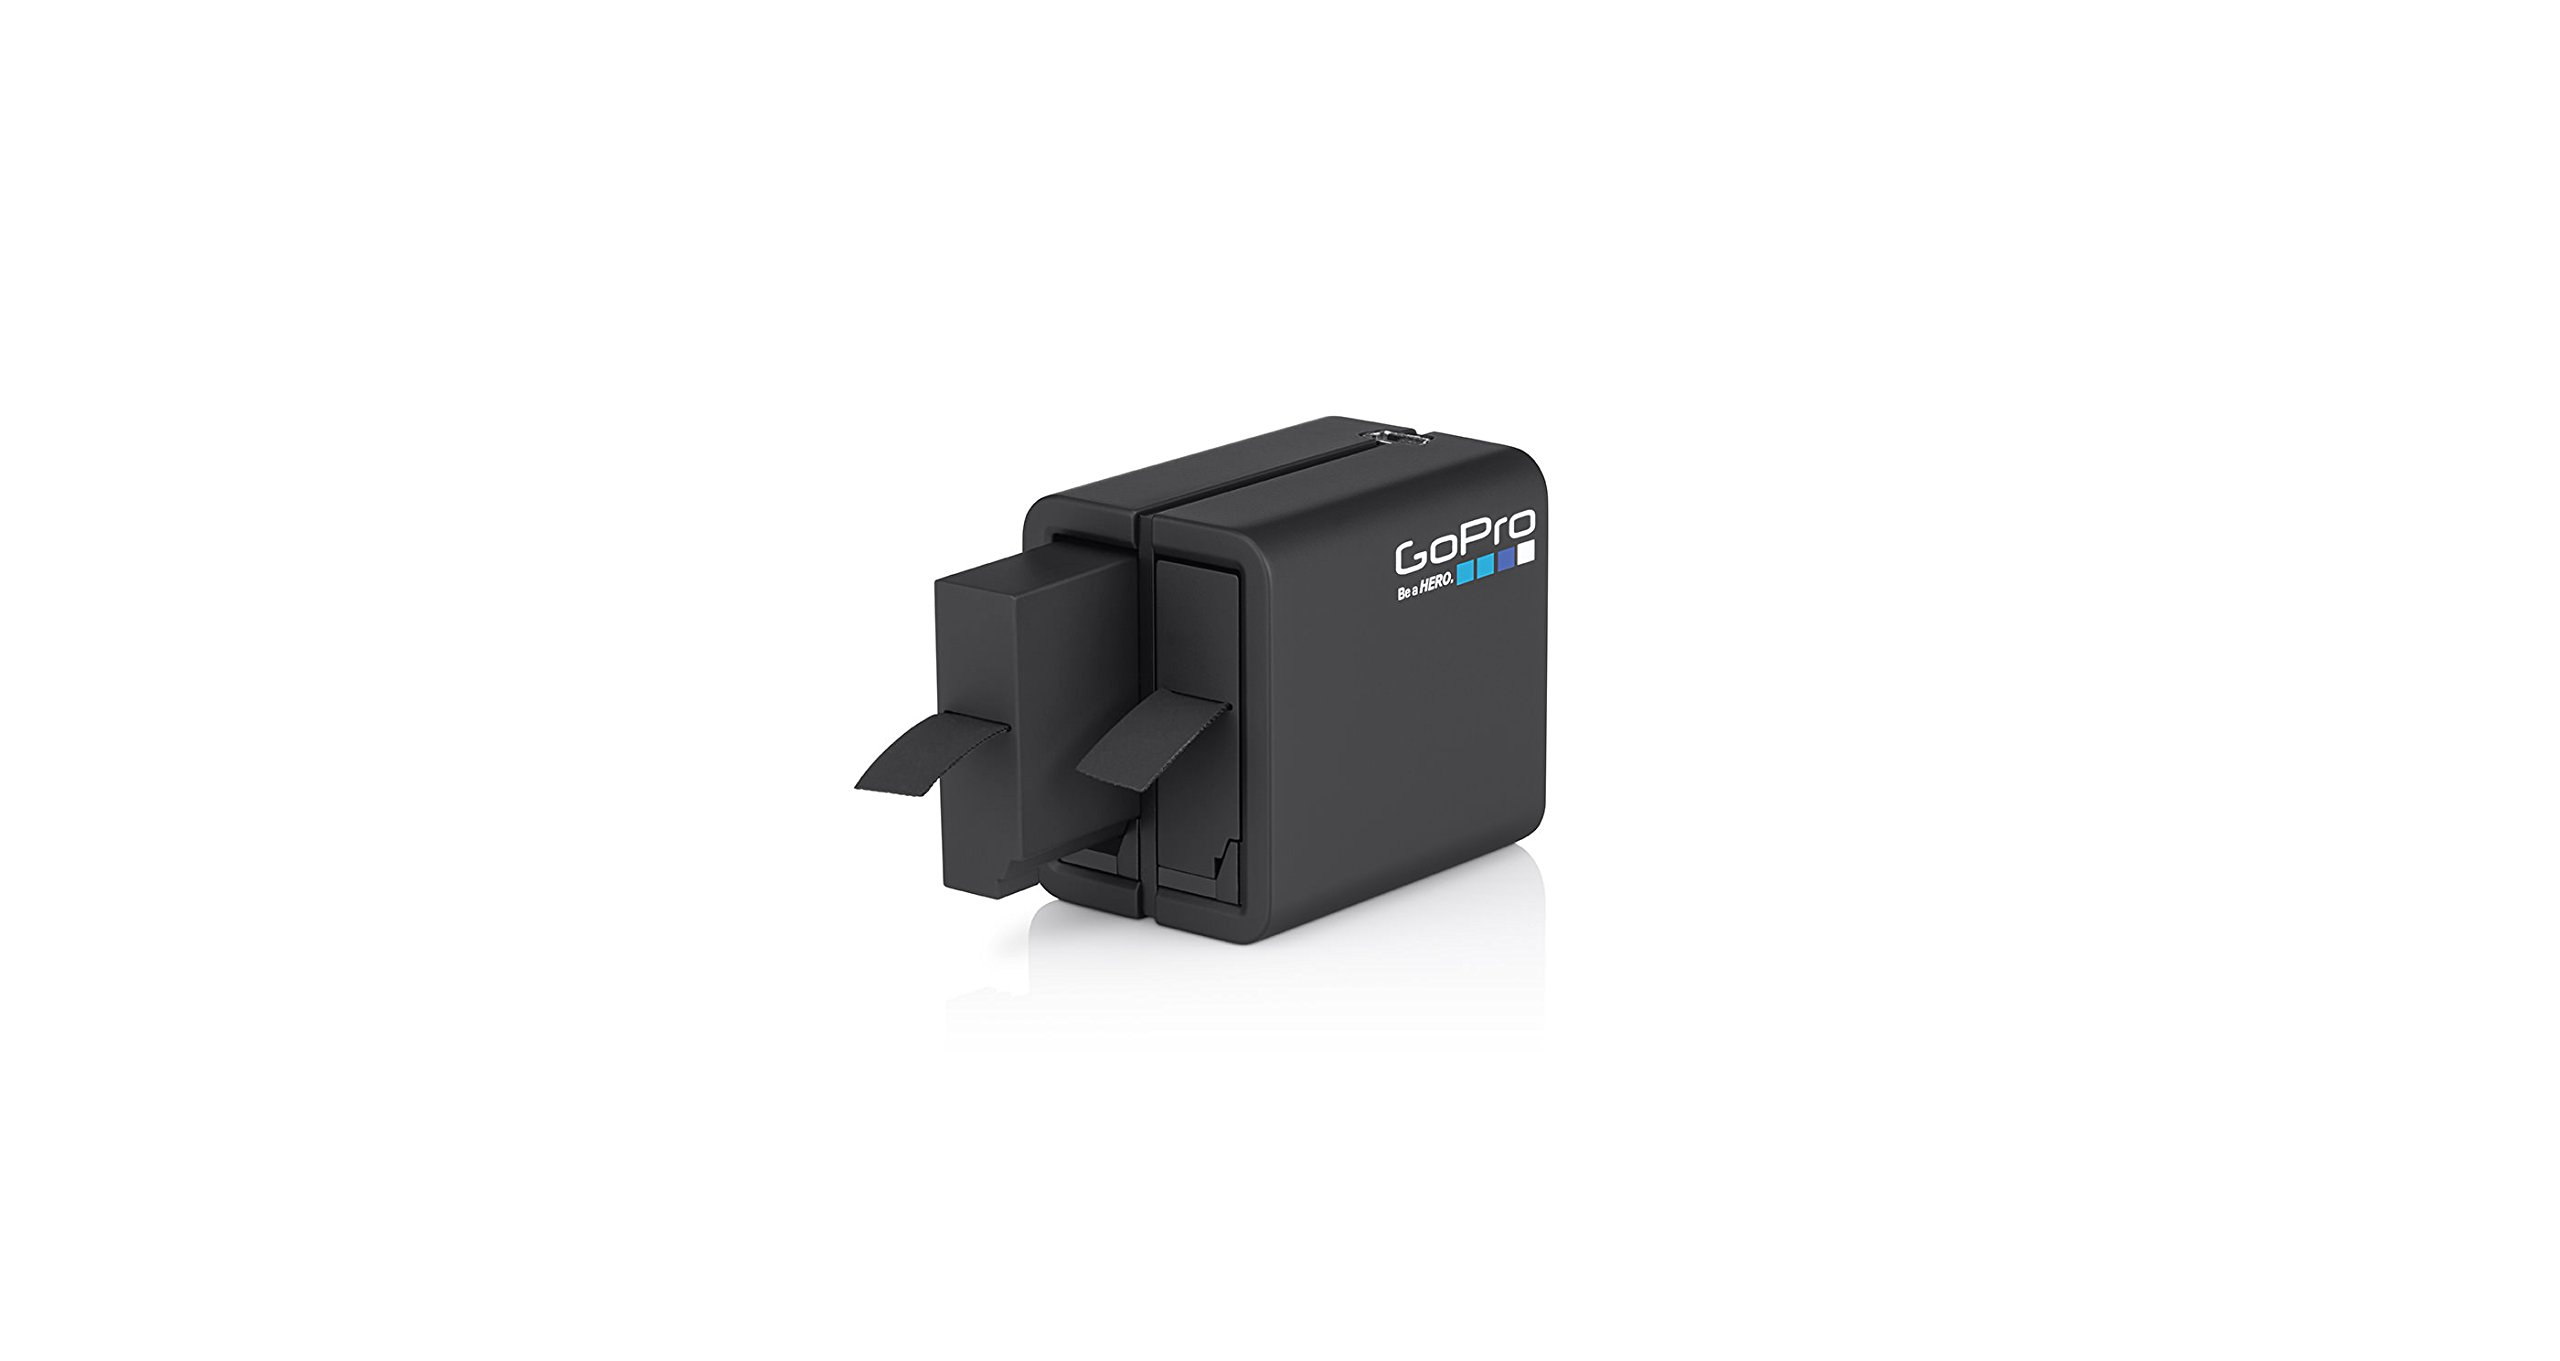 GoPro Dual Battery Charger + Battery (for HERO4 Black/HERO4 Silver) (GoPro OFFICIAL ACCESSORY) by GoPro